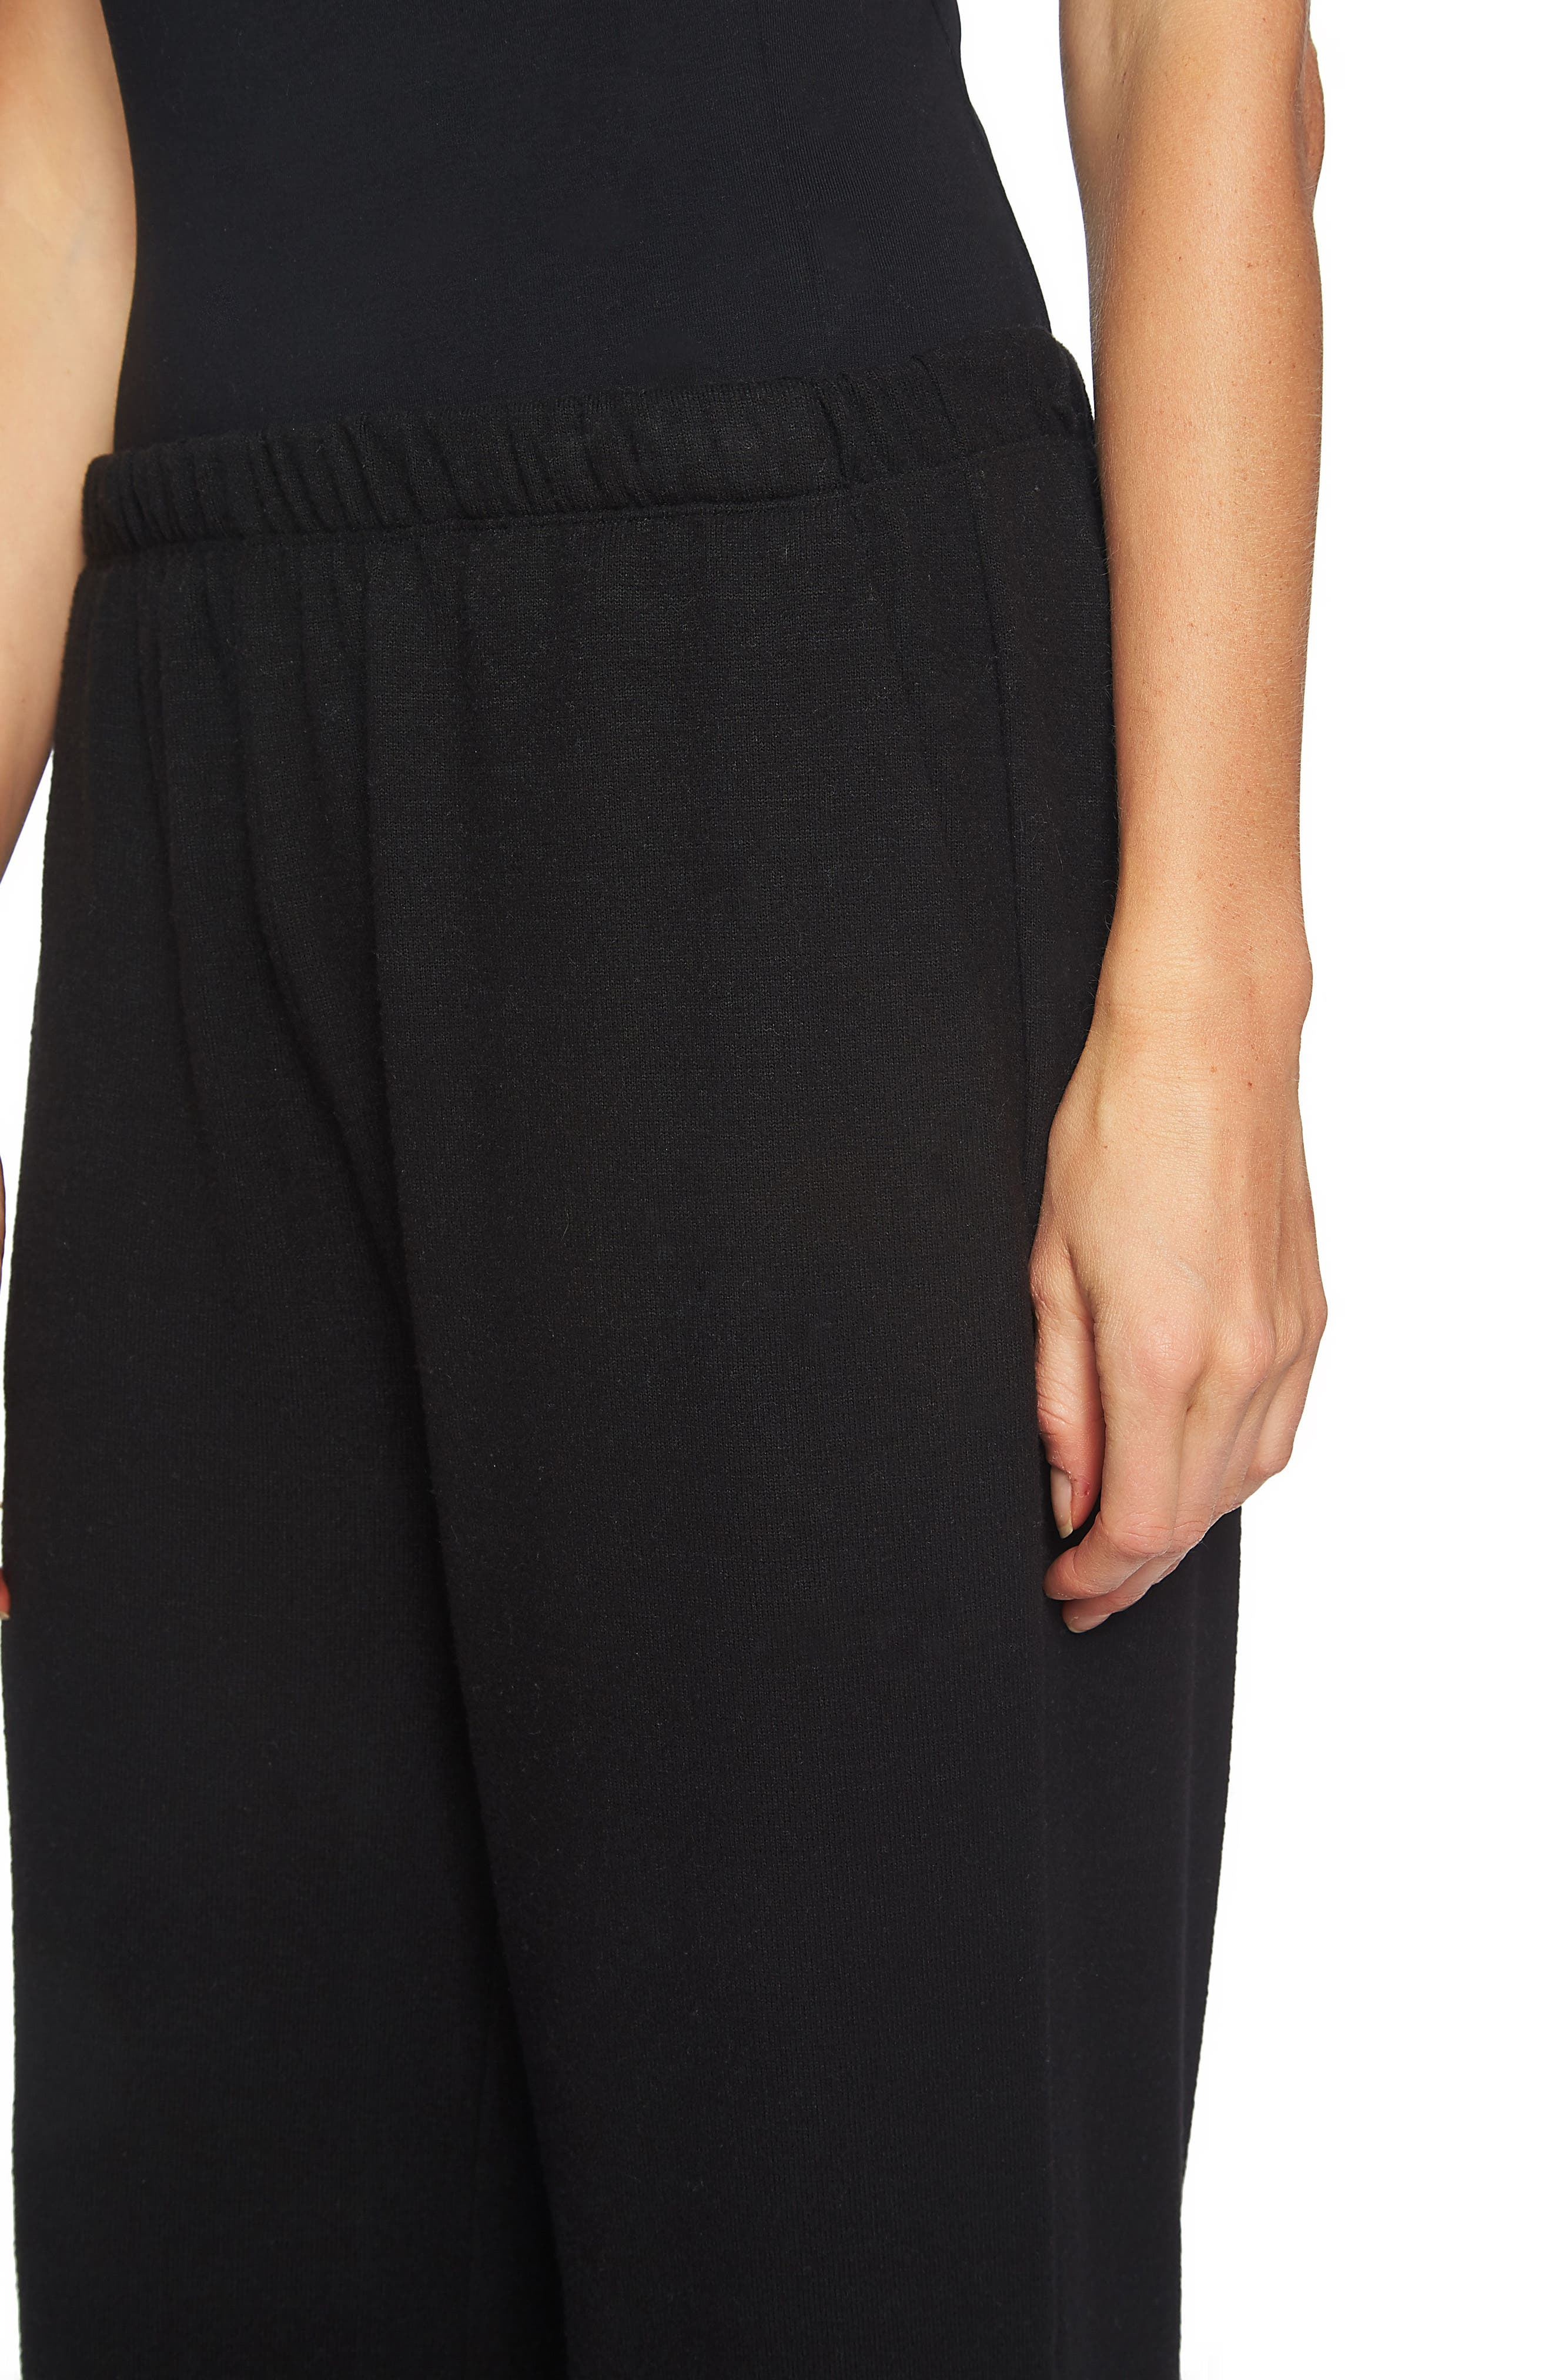 Brushed Jersey Culottes,                             Alternate thumbnail 4, color,                             006